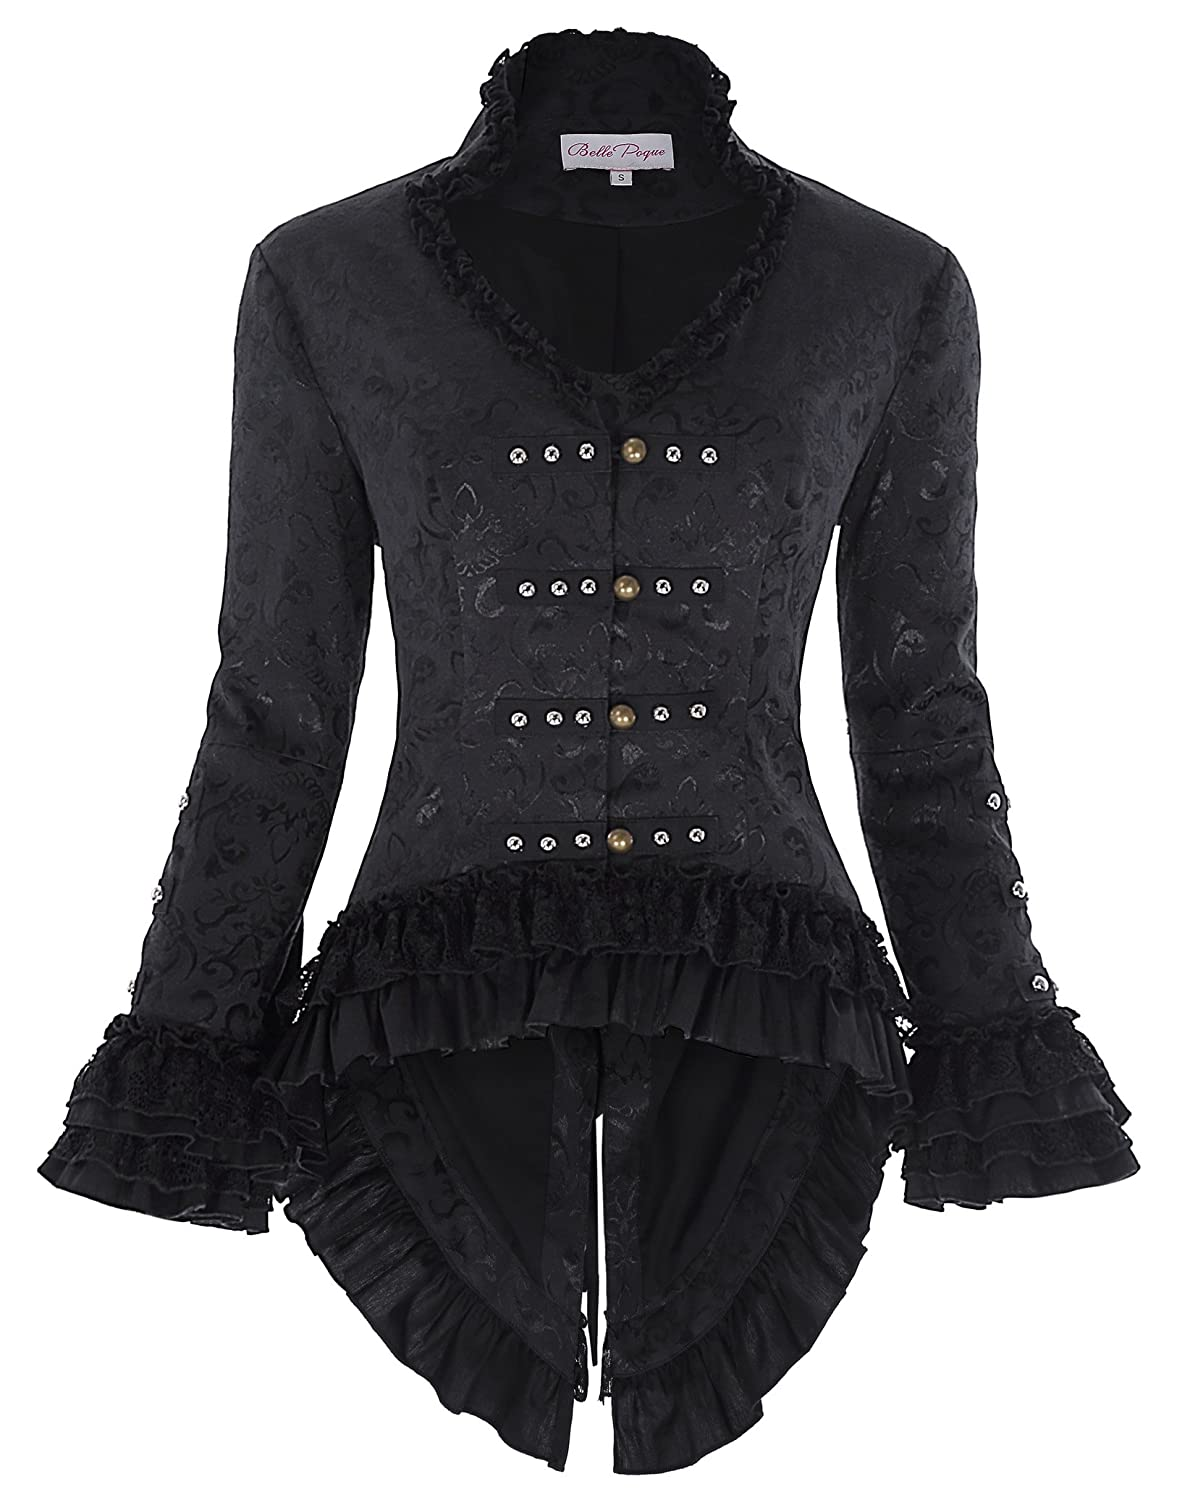 Belle Poque Retro Gothic Victorian Corset Jacquard Tailcoat Lace Embellished Jacket